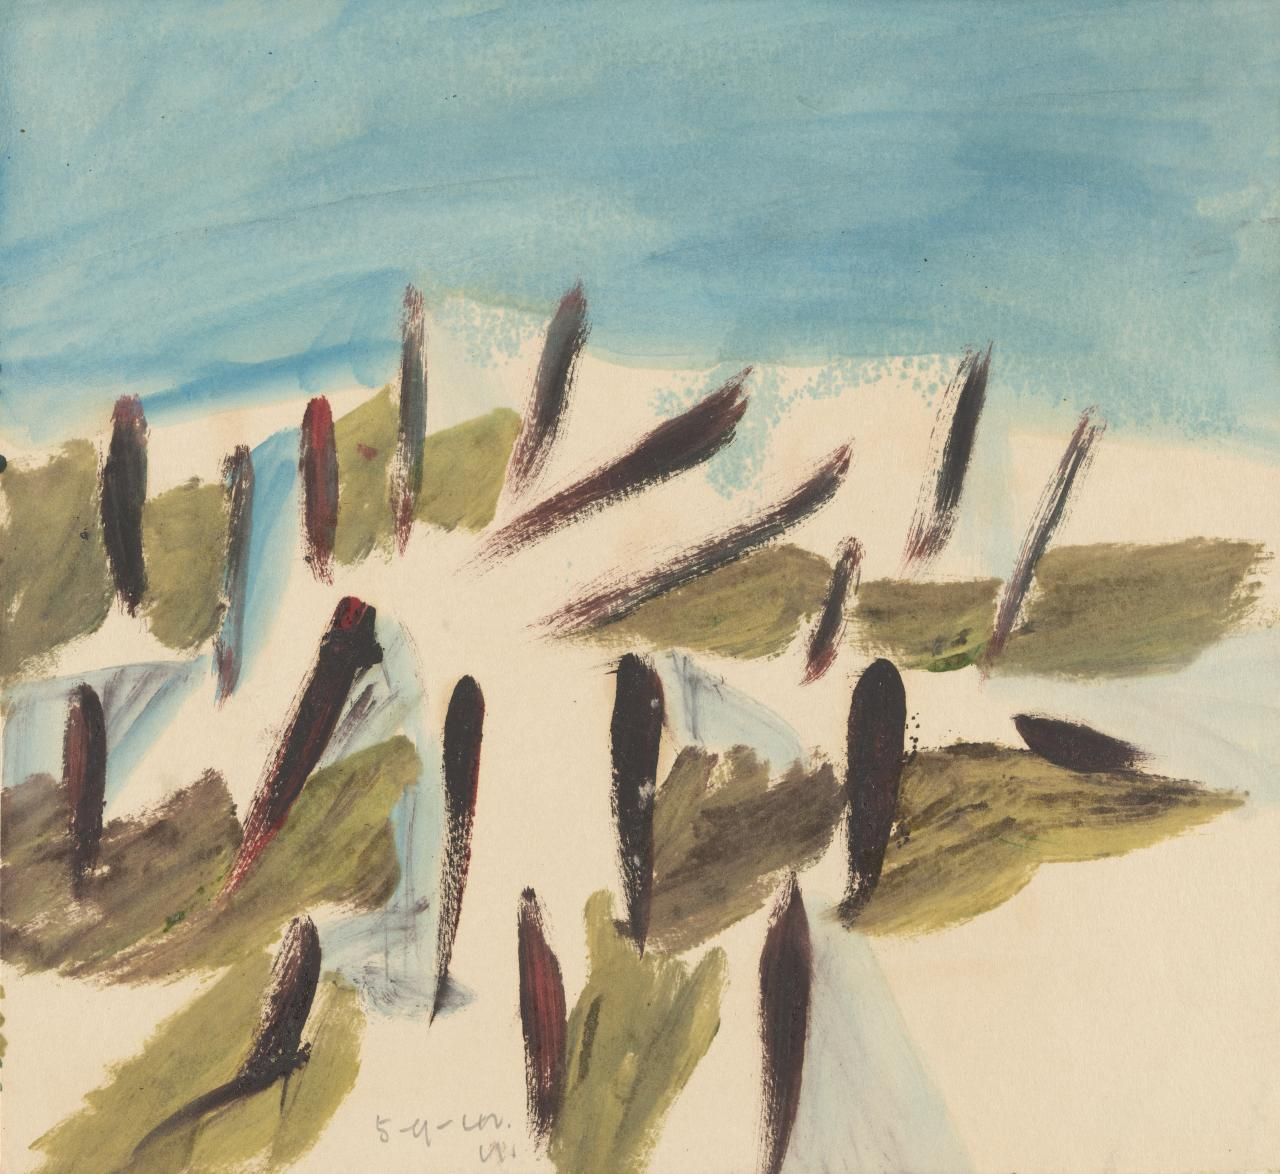 Untitled (Wimmera Landscape)